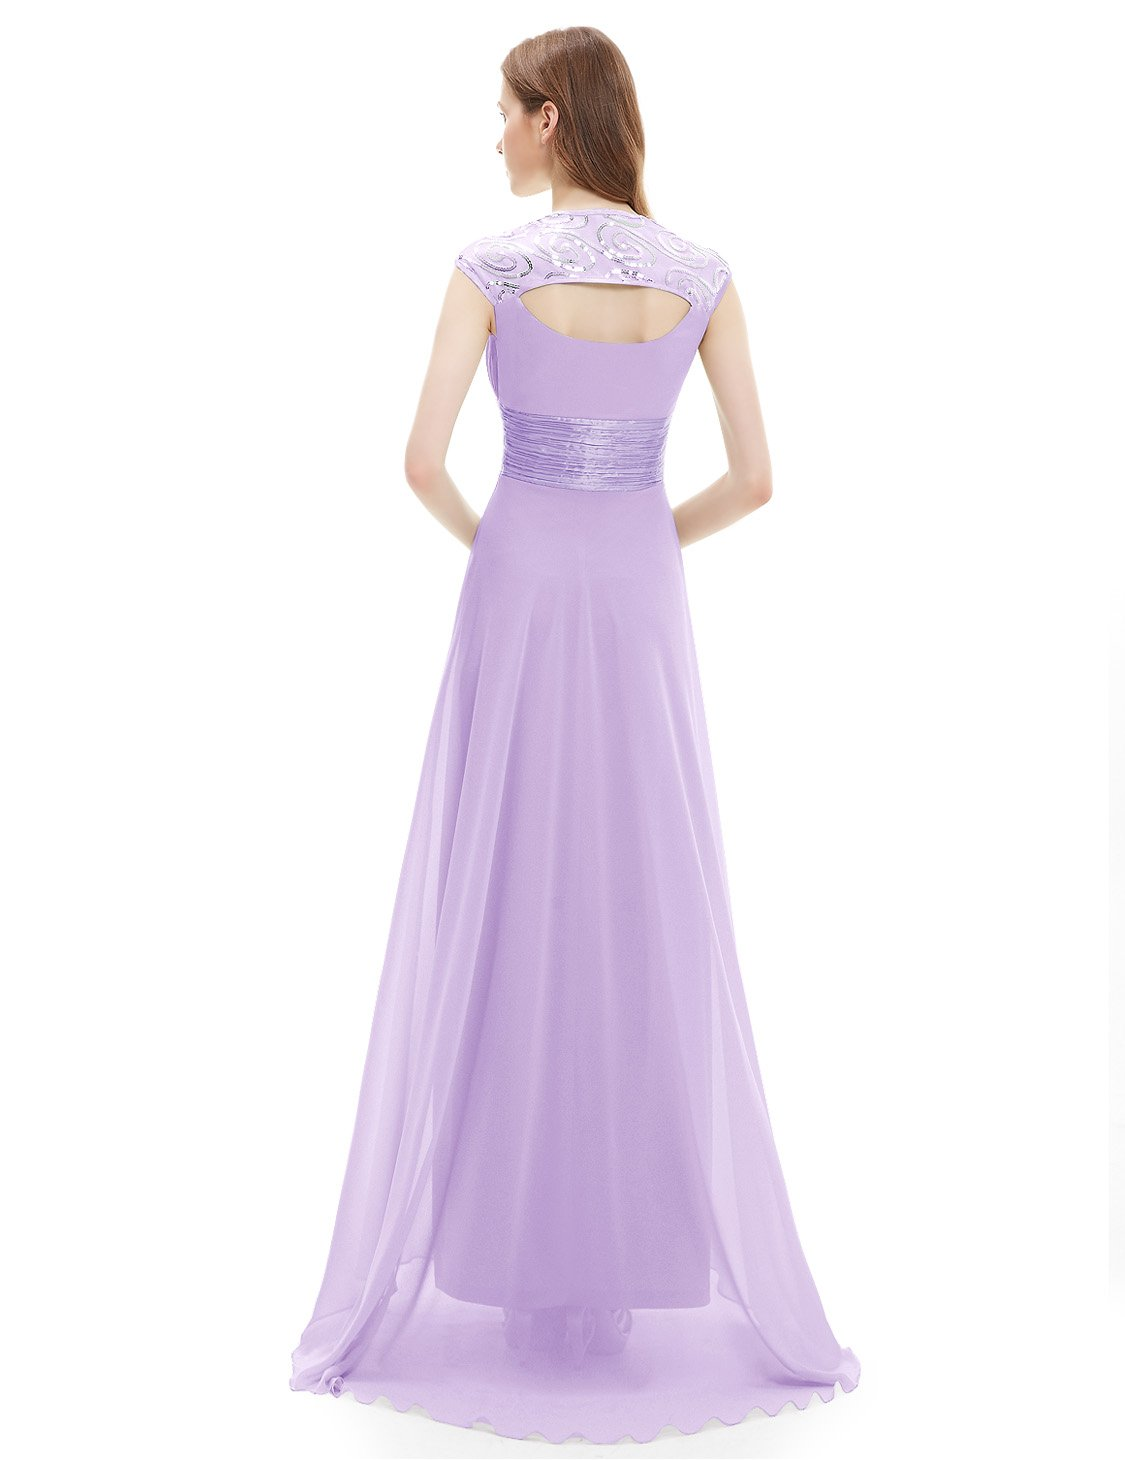 Ever-Pretty Womens Empire Waist Formal Long Military Ball Gown 12 US Light Purple by Ever-Pretty (Image #2)